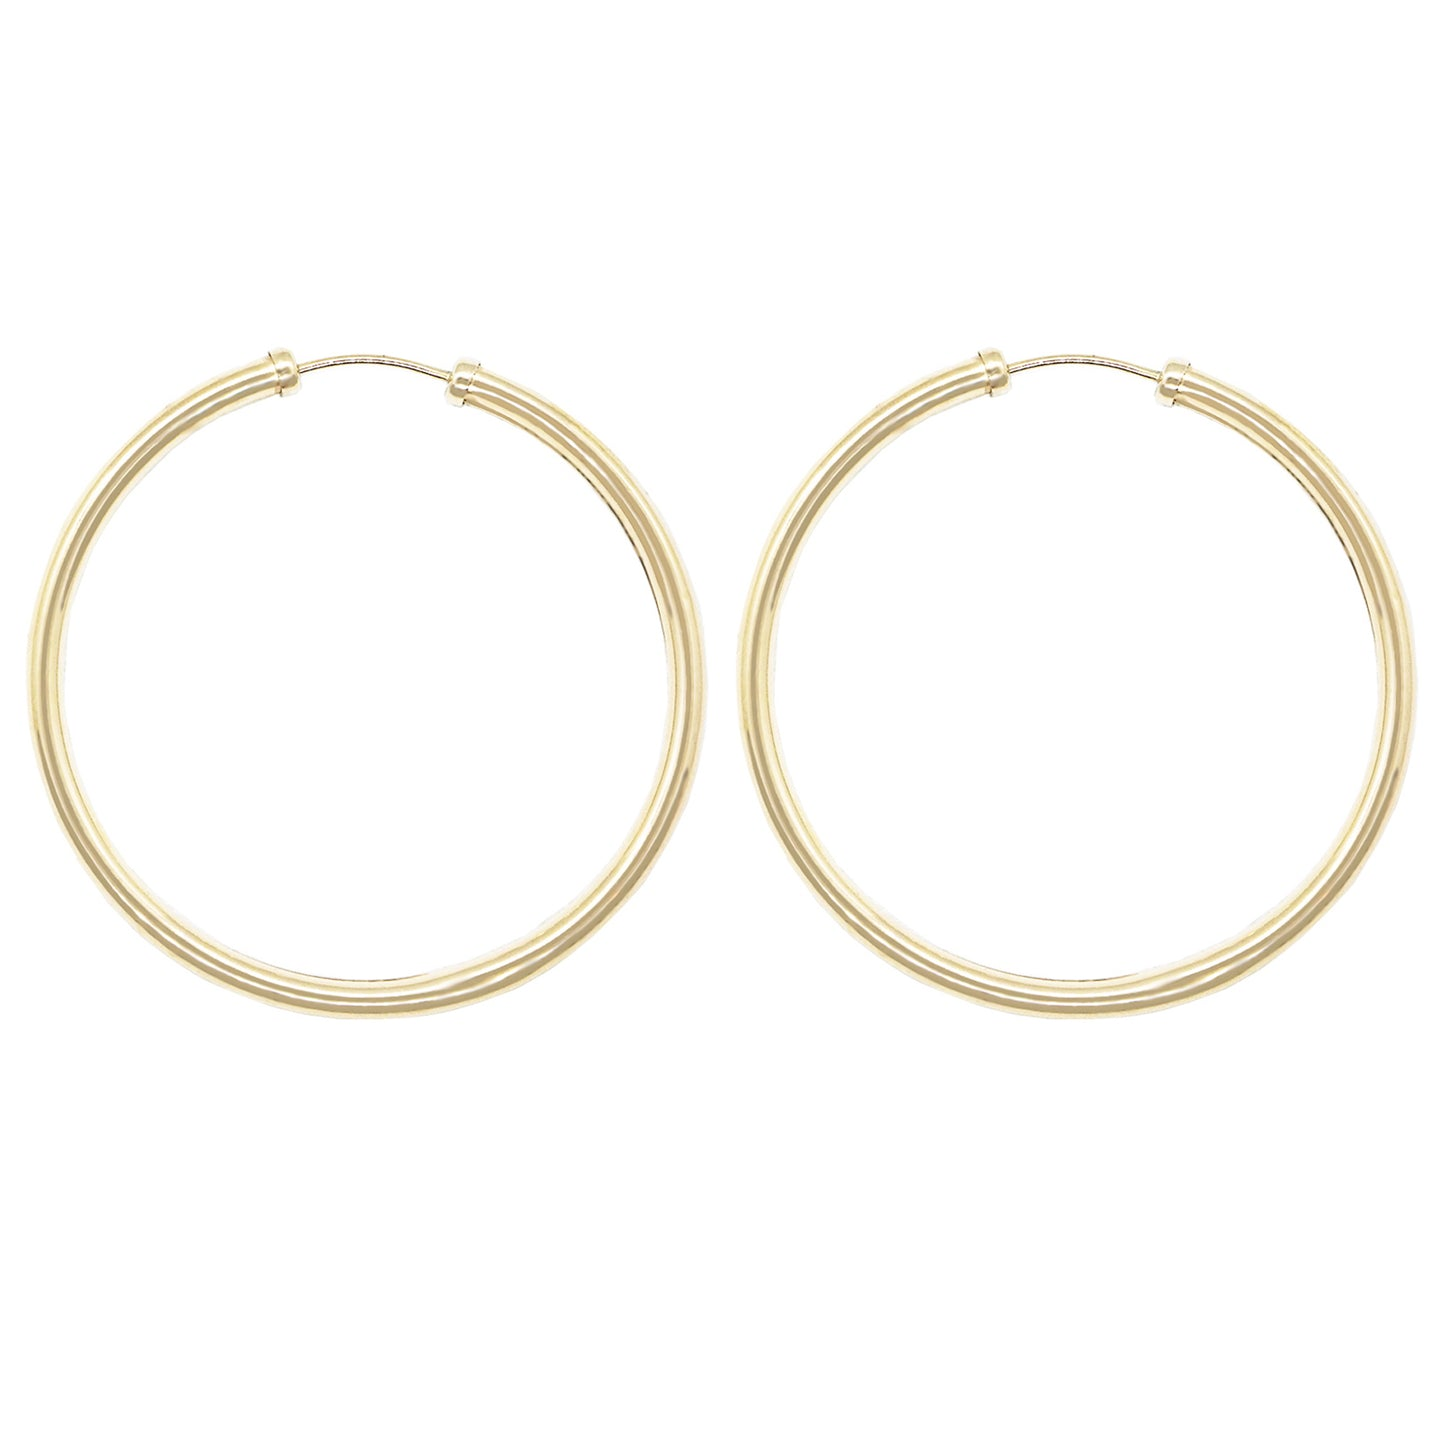 pair of 9k gold tube hoop earrings